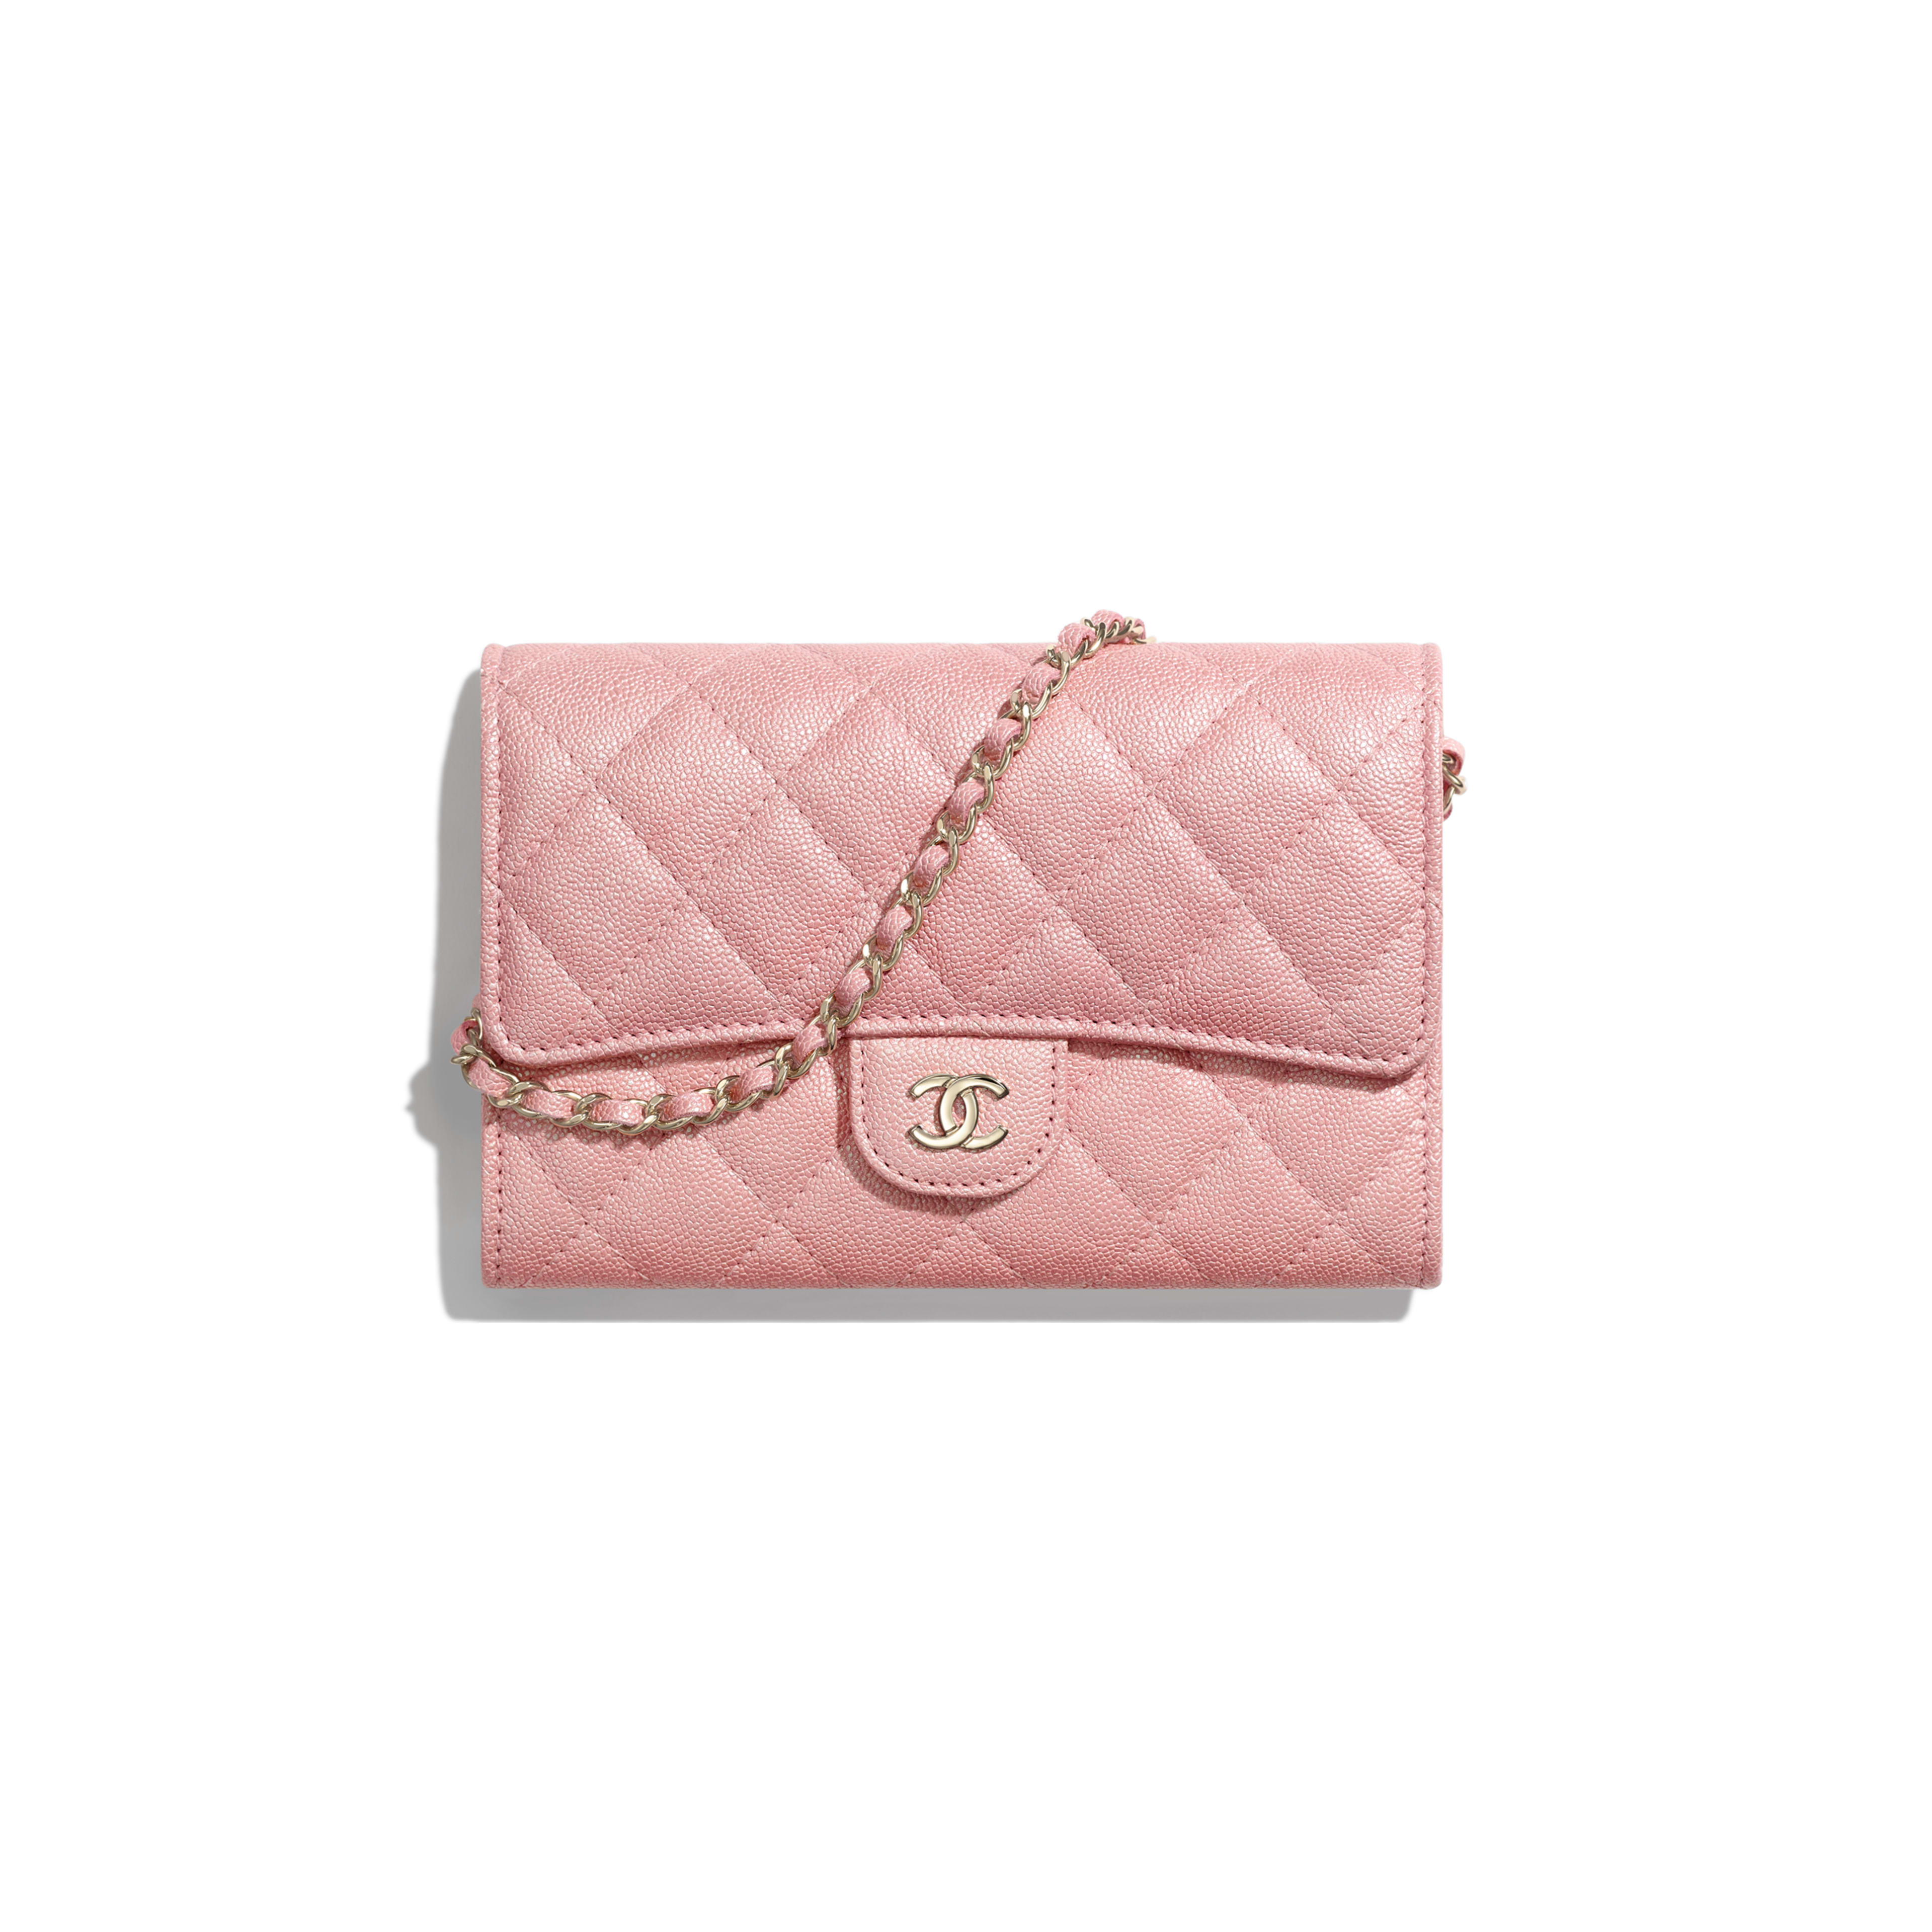 Classic Clutch with Chain - Pink - Iridescent Grained Calfskin & Gold-Tone Metal - Default view - see full sized version